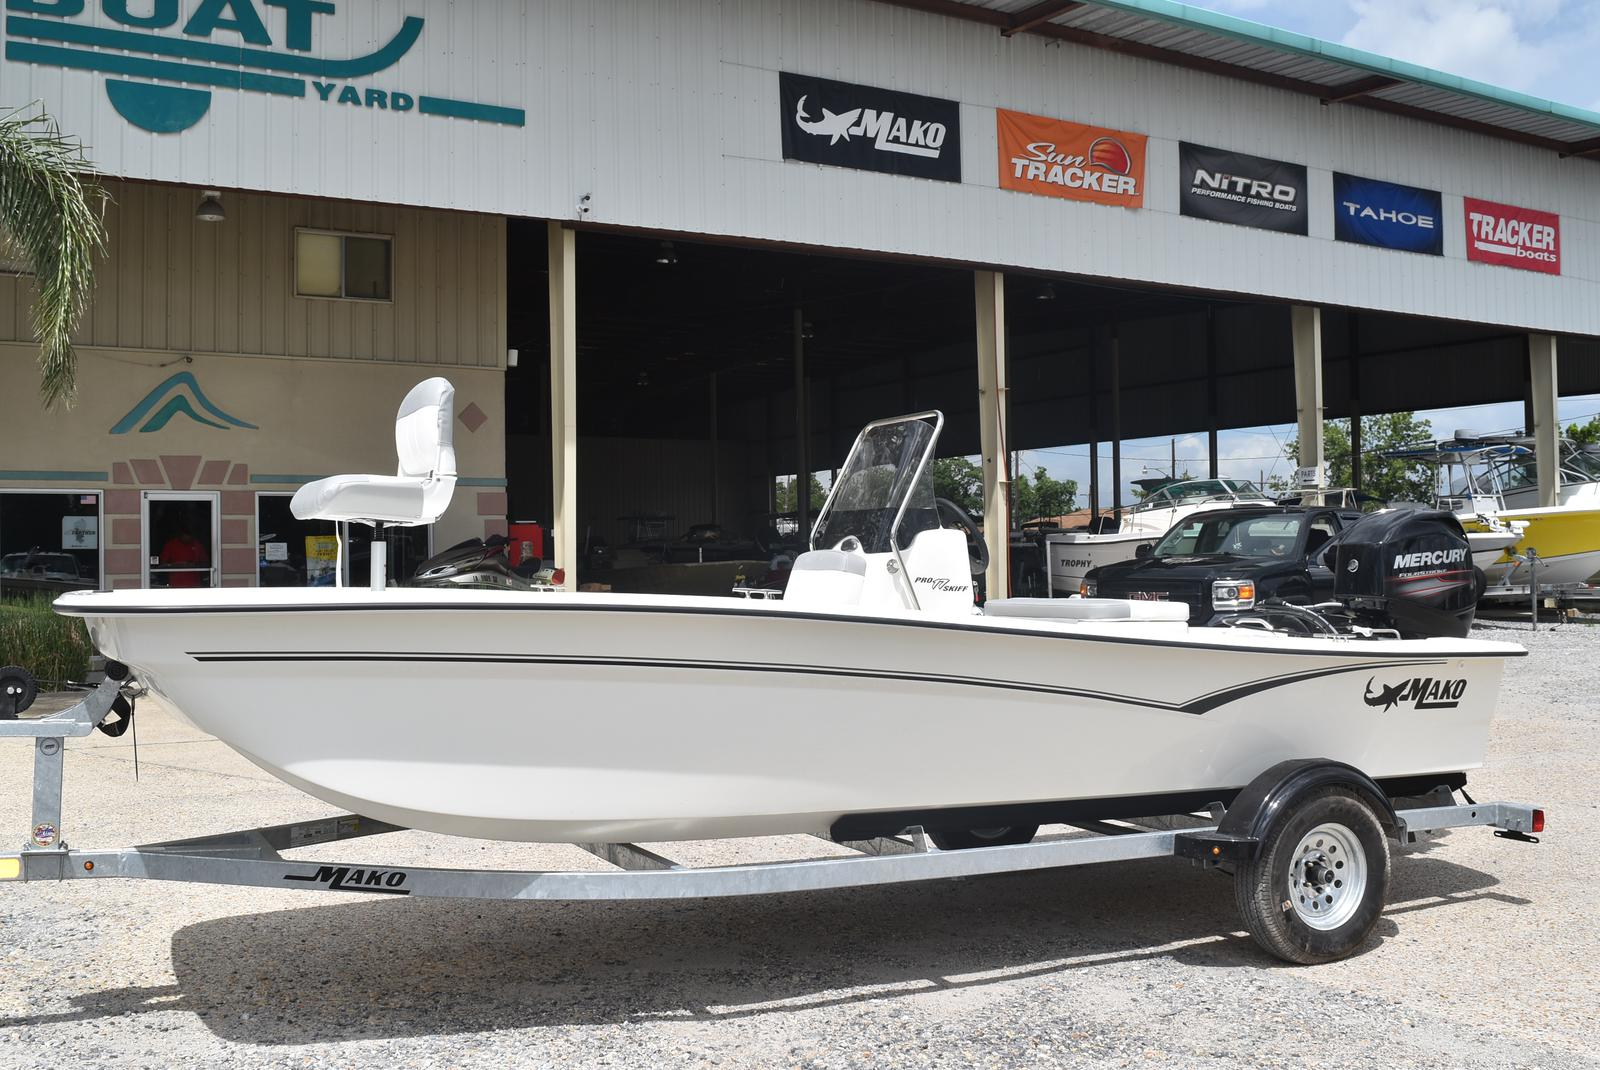 2020 Mako boat for sale, model of the boat is Pro Skiff 17, 75 ELPT & Image # 89 of 702